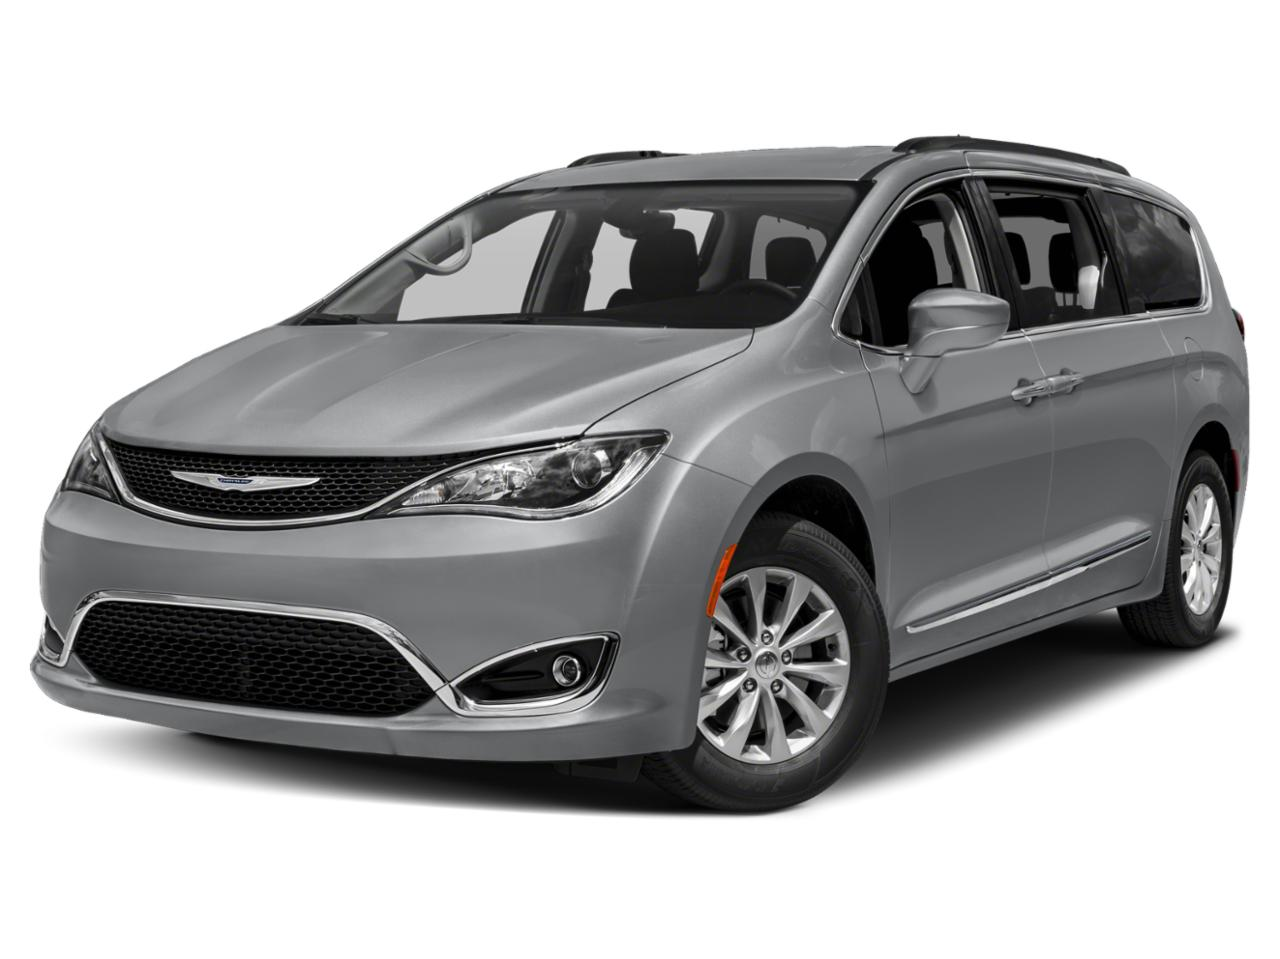 2018 Chrysler Pacifica Vehicle Photo in MIDDLETON, WI 53562-1492